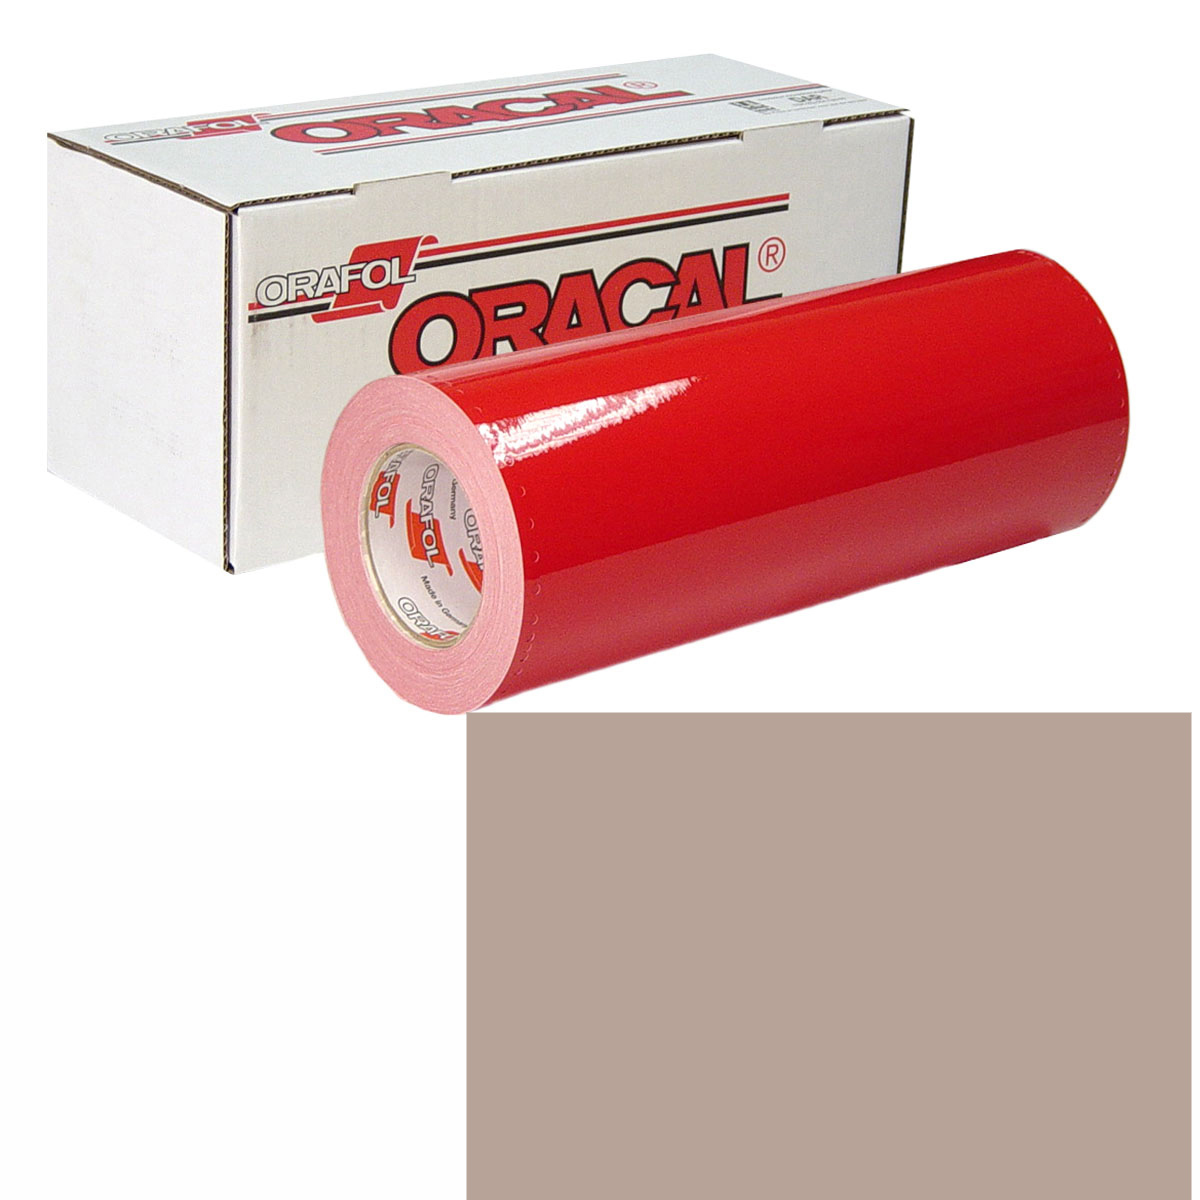 ORACAL 951M Unp 24in X 10yd 923 Light Brown